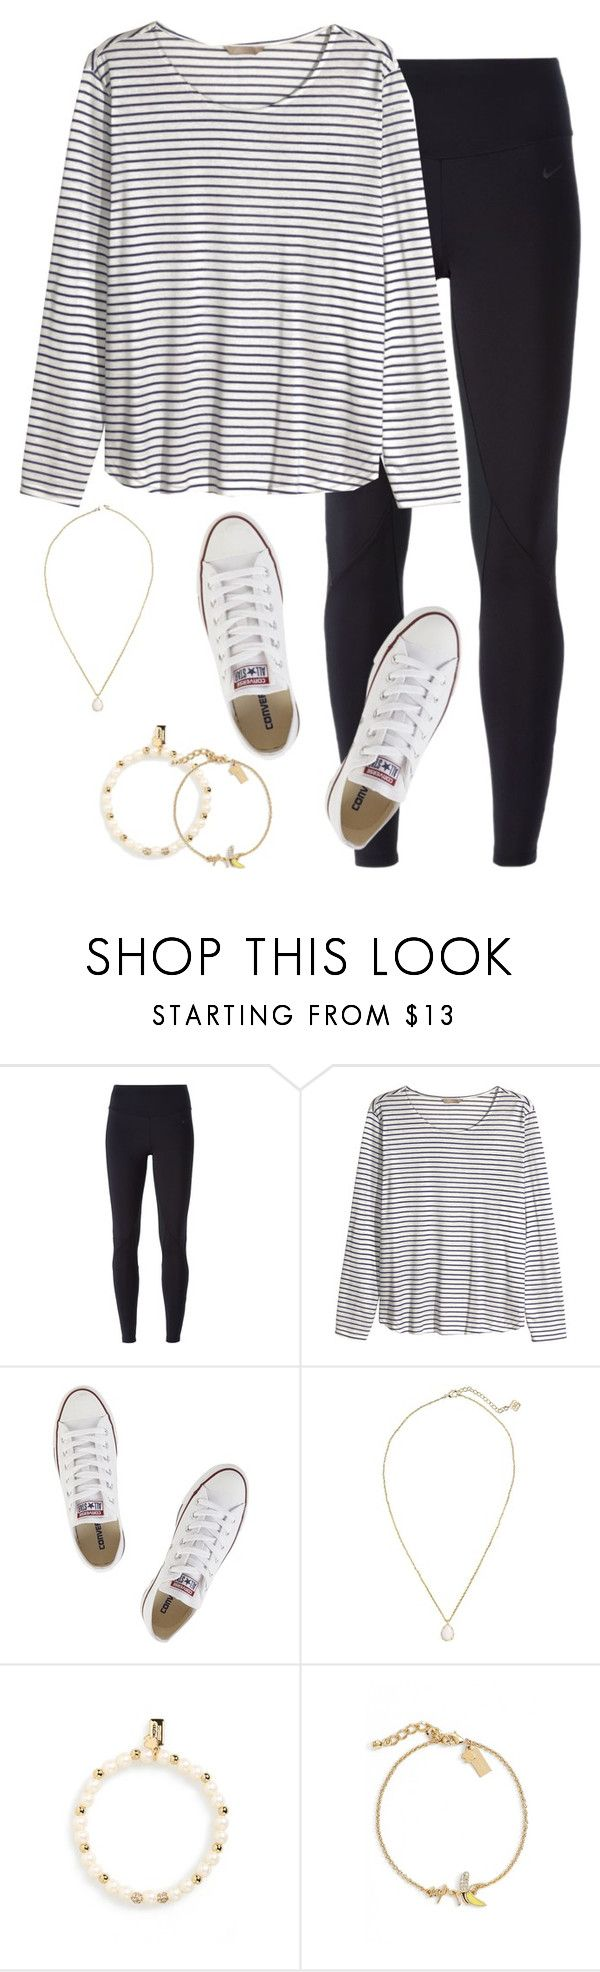 """""""Never take advantage of life, it can be takin away from you in a blink of an eye"""" by keileeen ❤ liked on Polyvore featuring NIKE, H&M, Converse, Kendra Scott and Kate Spade"""